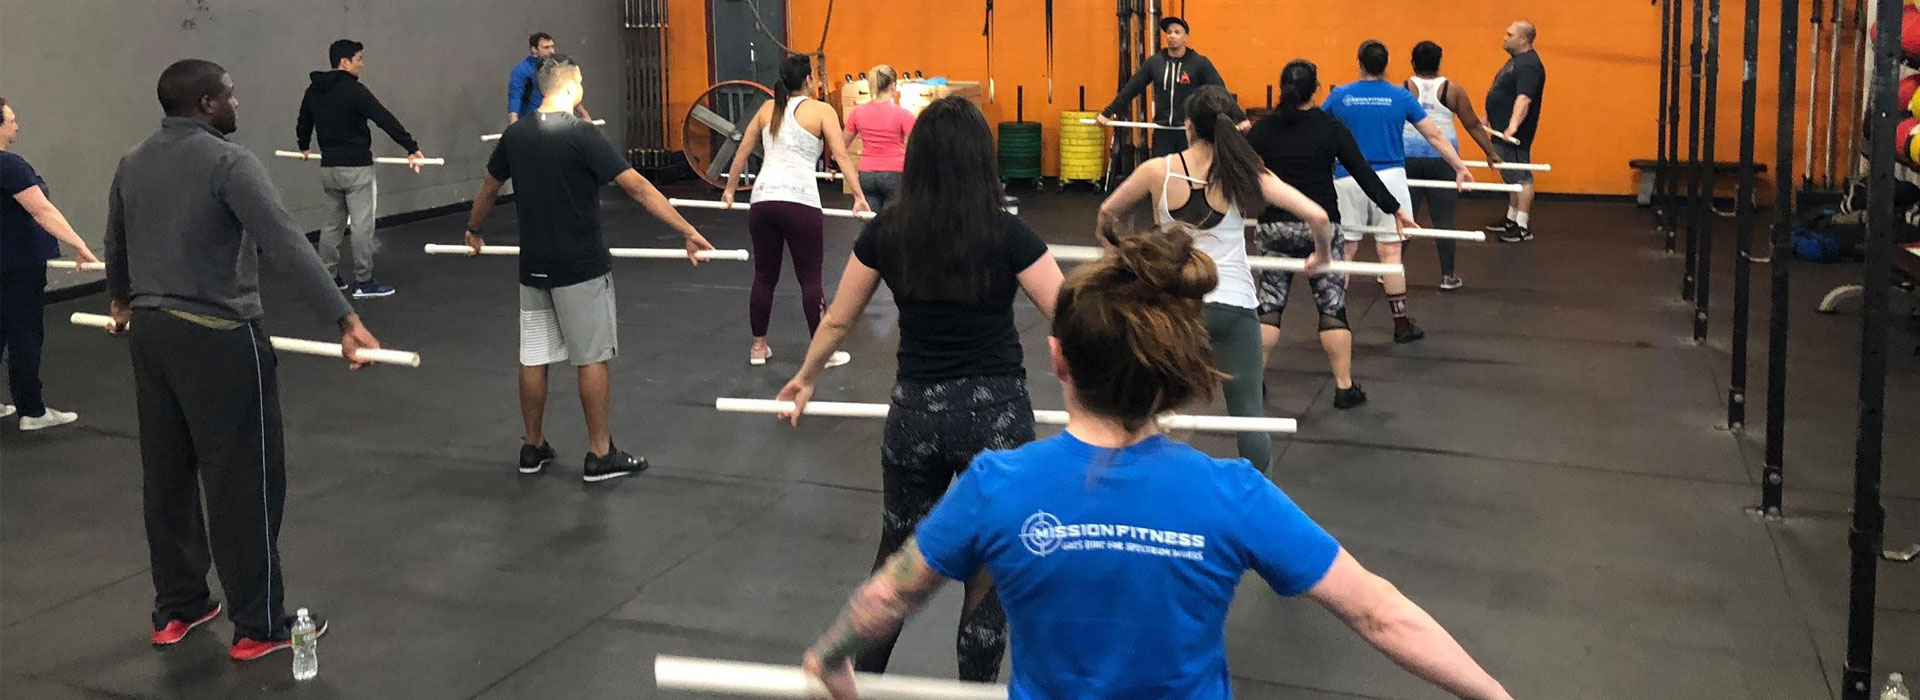 Why NCFIT Iron Strong Is Ranked One Of The Best Gyms In North Brunswick NJ